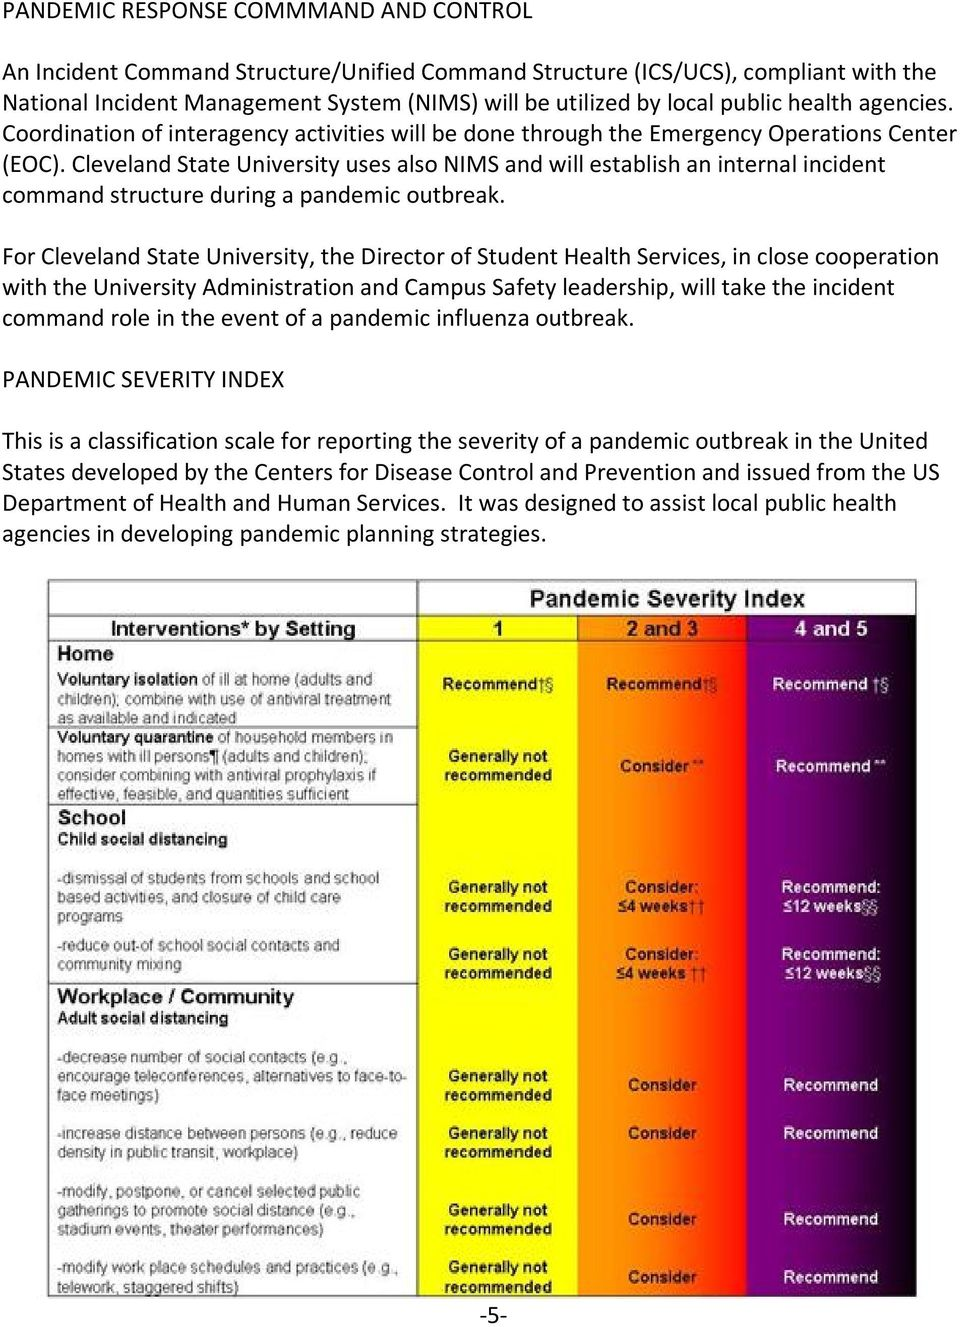 Cleveland State University uses also NIMS and will establish an internal incident command structure during a pandemic outbreak.